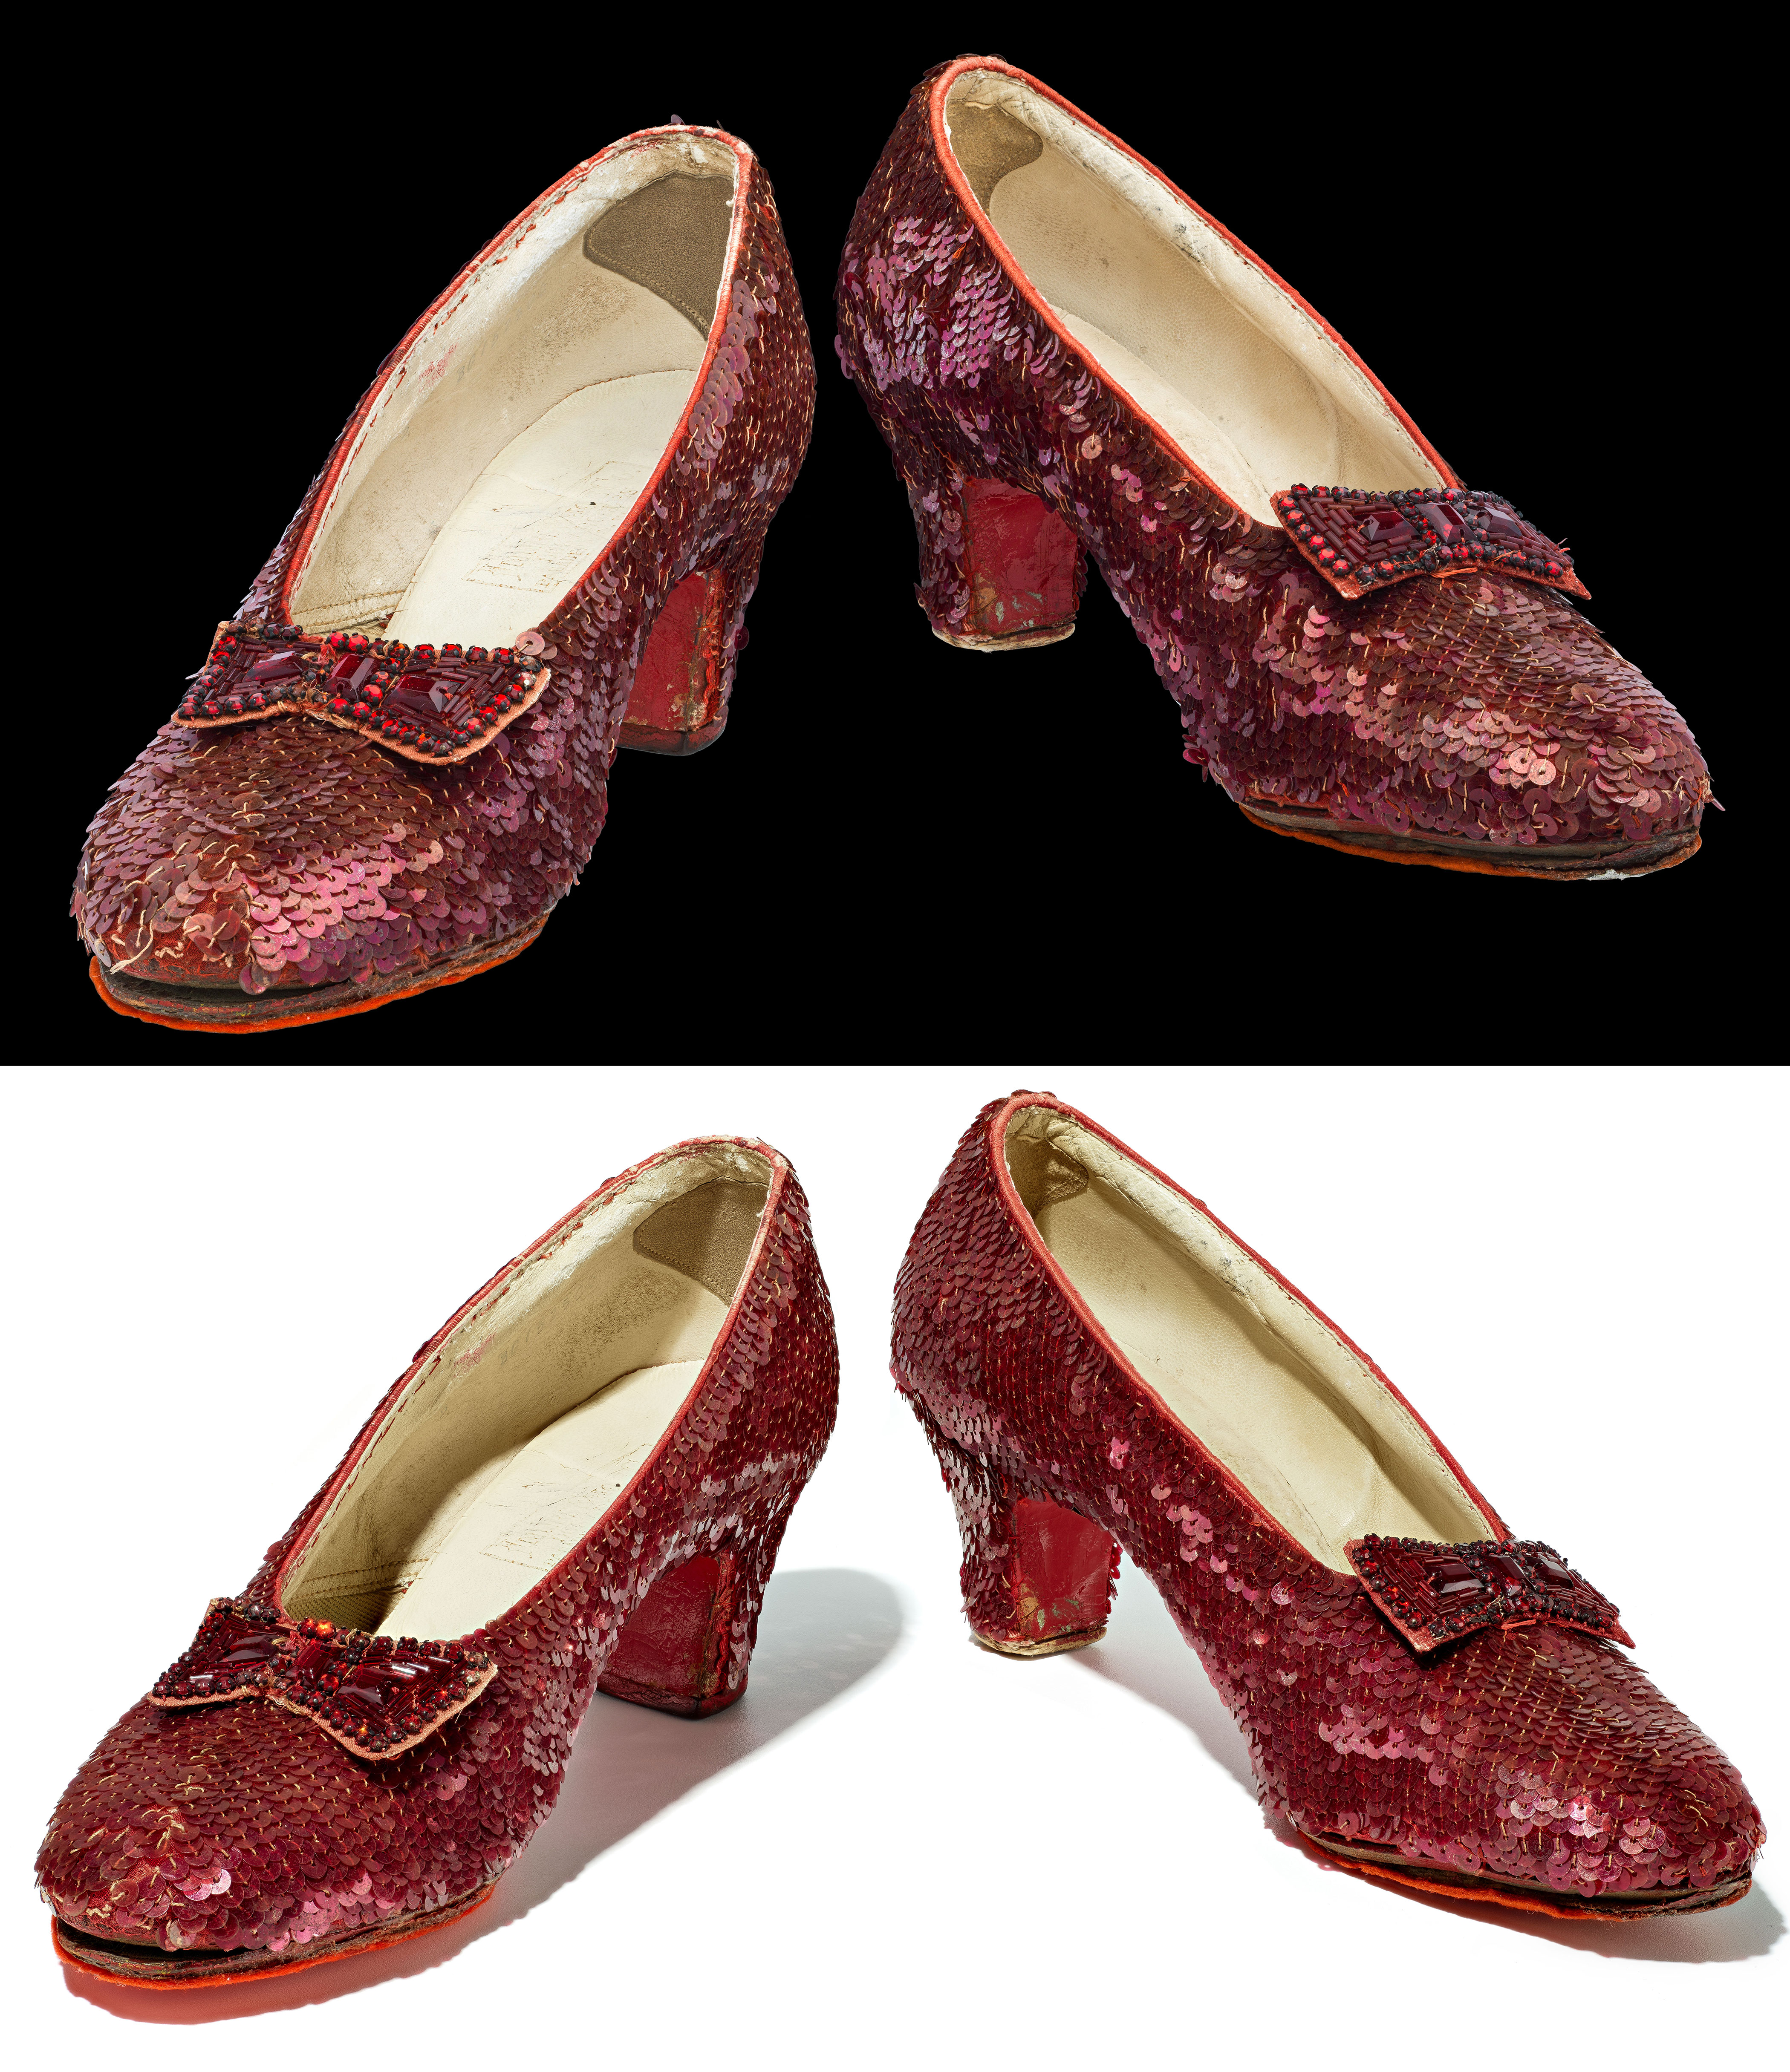 Two photos of a pair of Ruby Slippers. Top image shows shoes before conservation. Bottom shows shoes after conservation. Sequins are more aligned, beads are brighter.